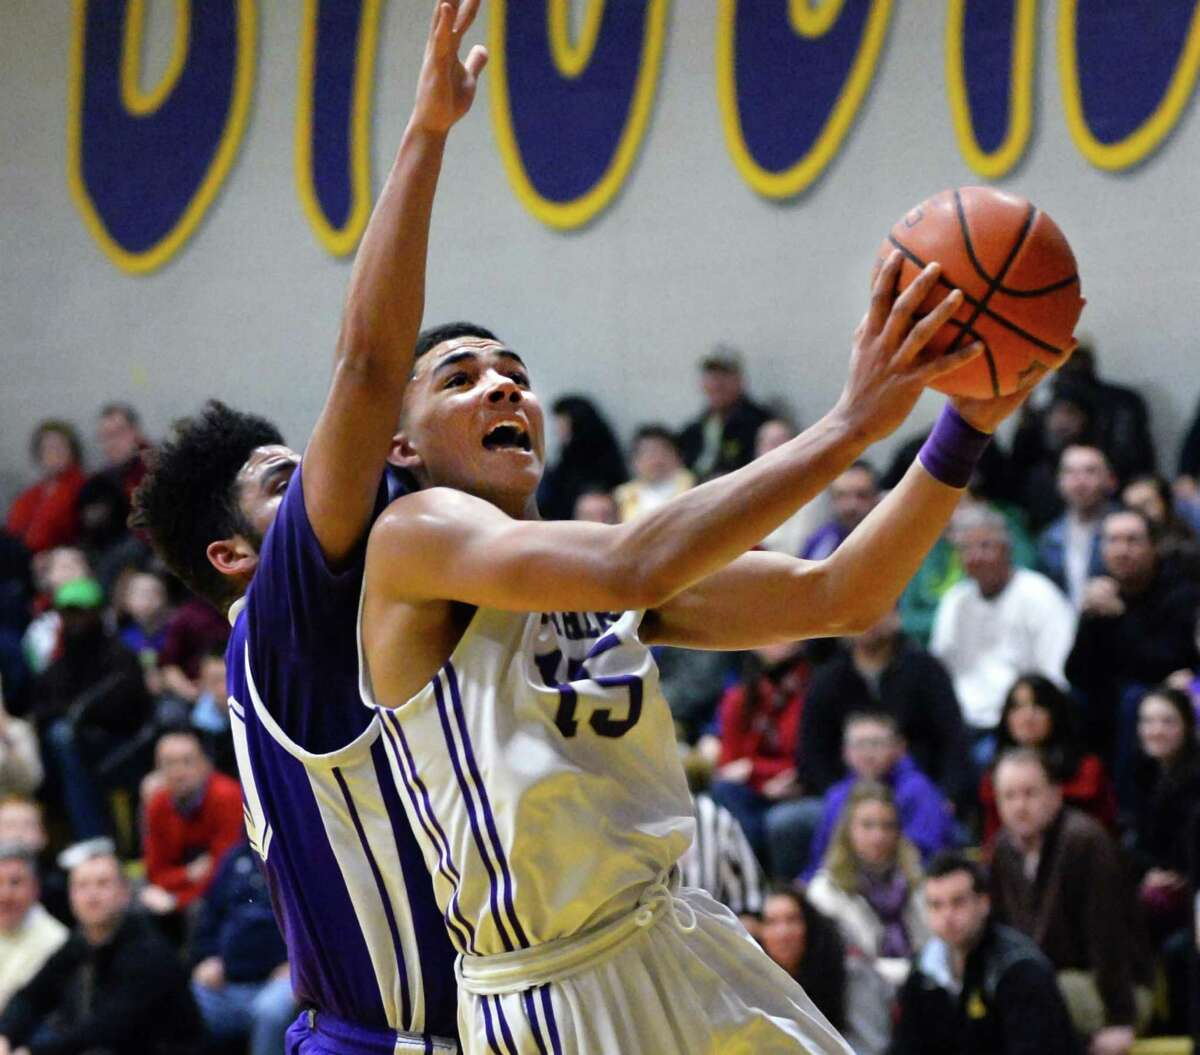 CBA's #15 Mike Wynn, right, is fouled by CCHS's #00 Gabe Woodley as he goes to the basket in Friday's game at CBA Feb. 6, 2015, in Colonie, NY. (John Carl D'Annibale / Times Union)